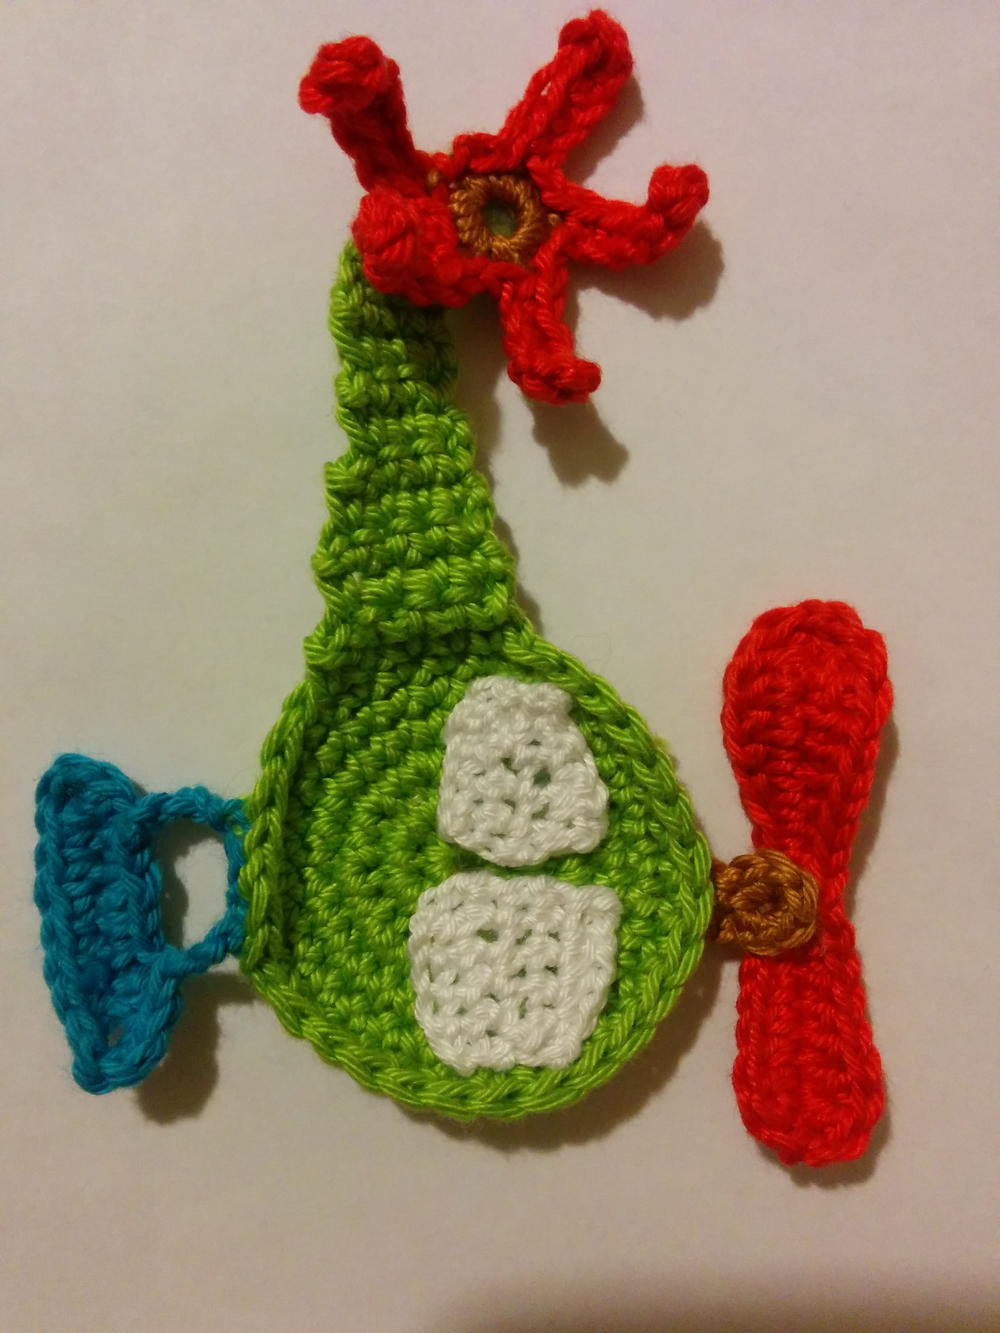 Crochet Applique Beautiful Small Helicopter Crochet Applique Of Marvelous 47 Images Crochet Applique